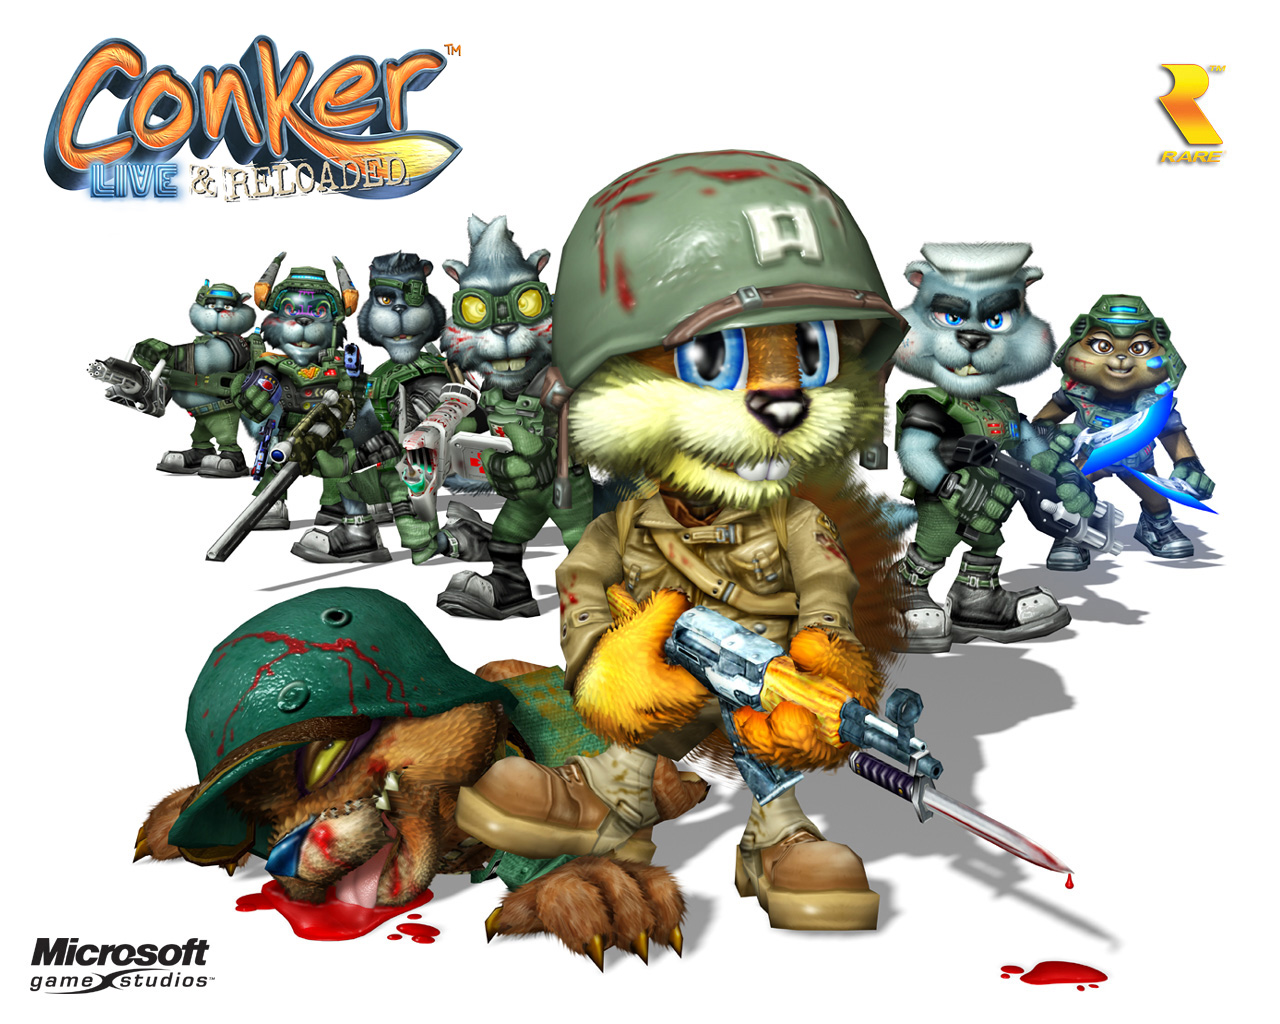 High Resolution Wallpaper | Conker: Live & Reloaded 1280x1024 px